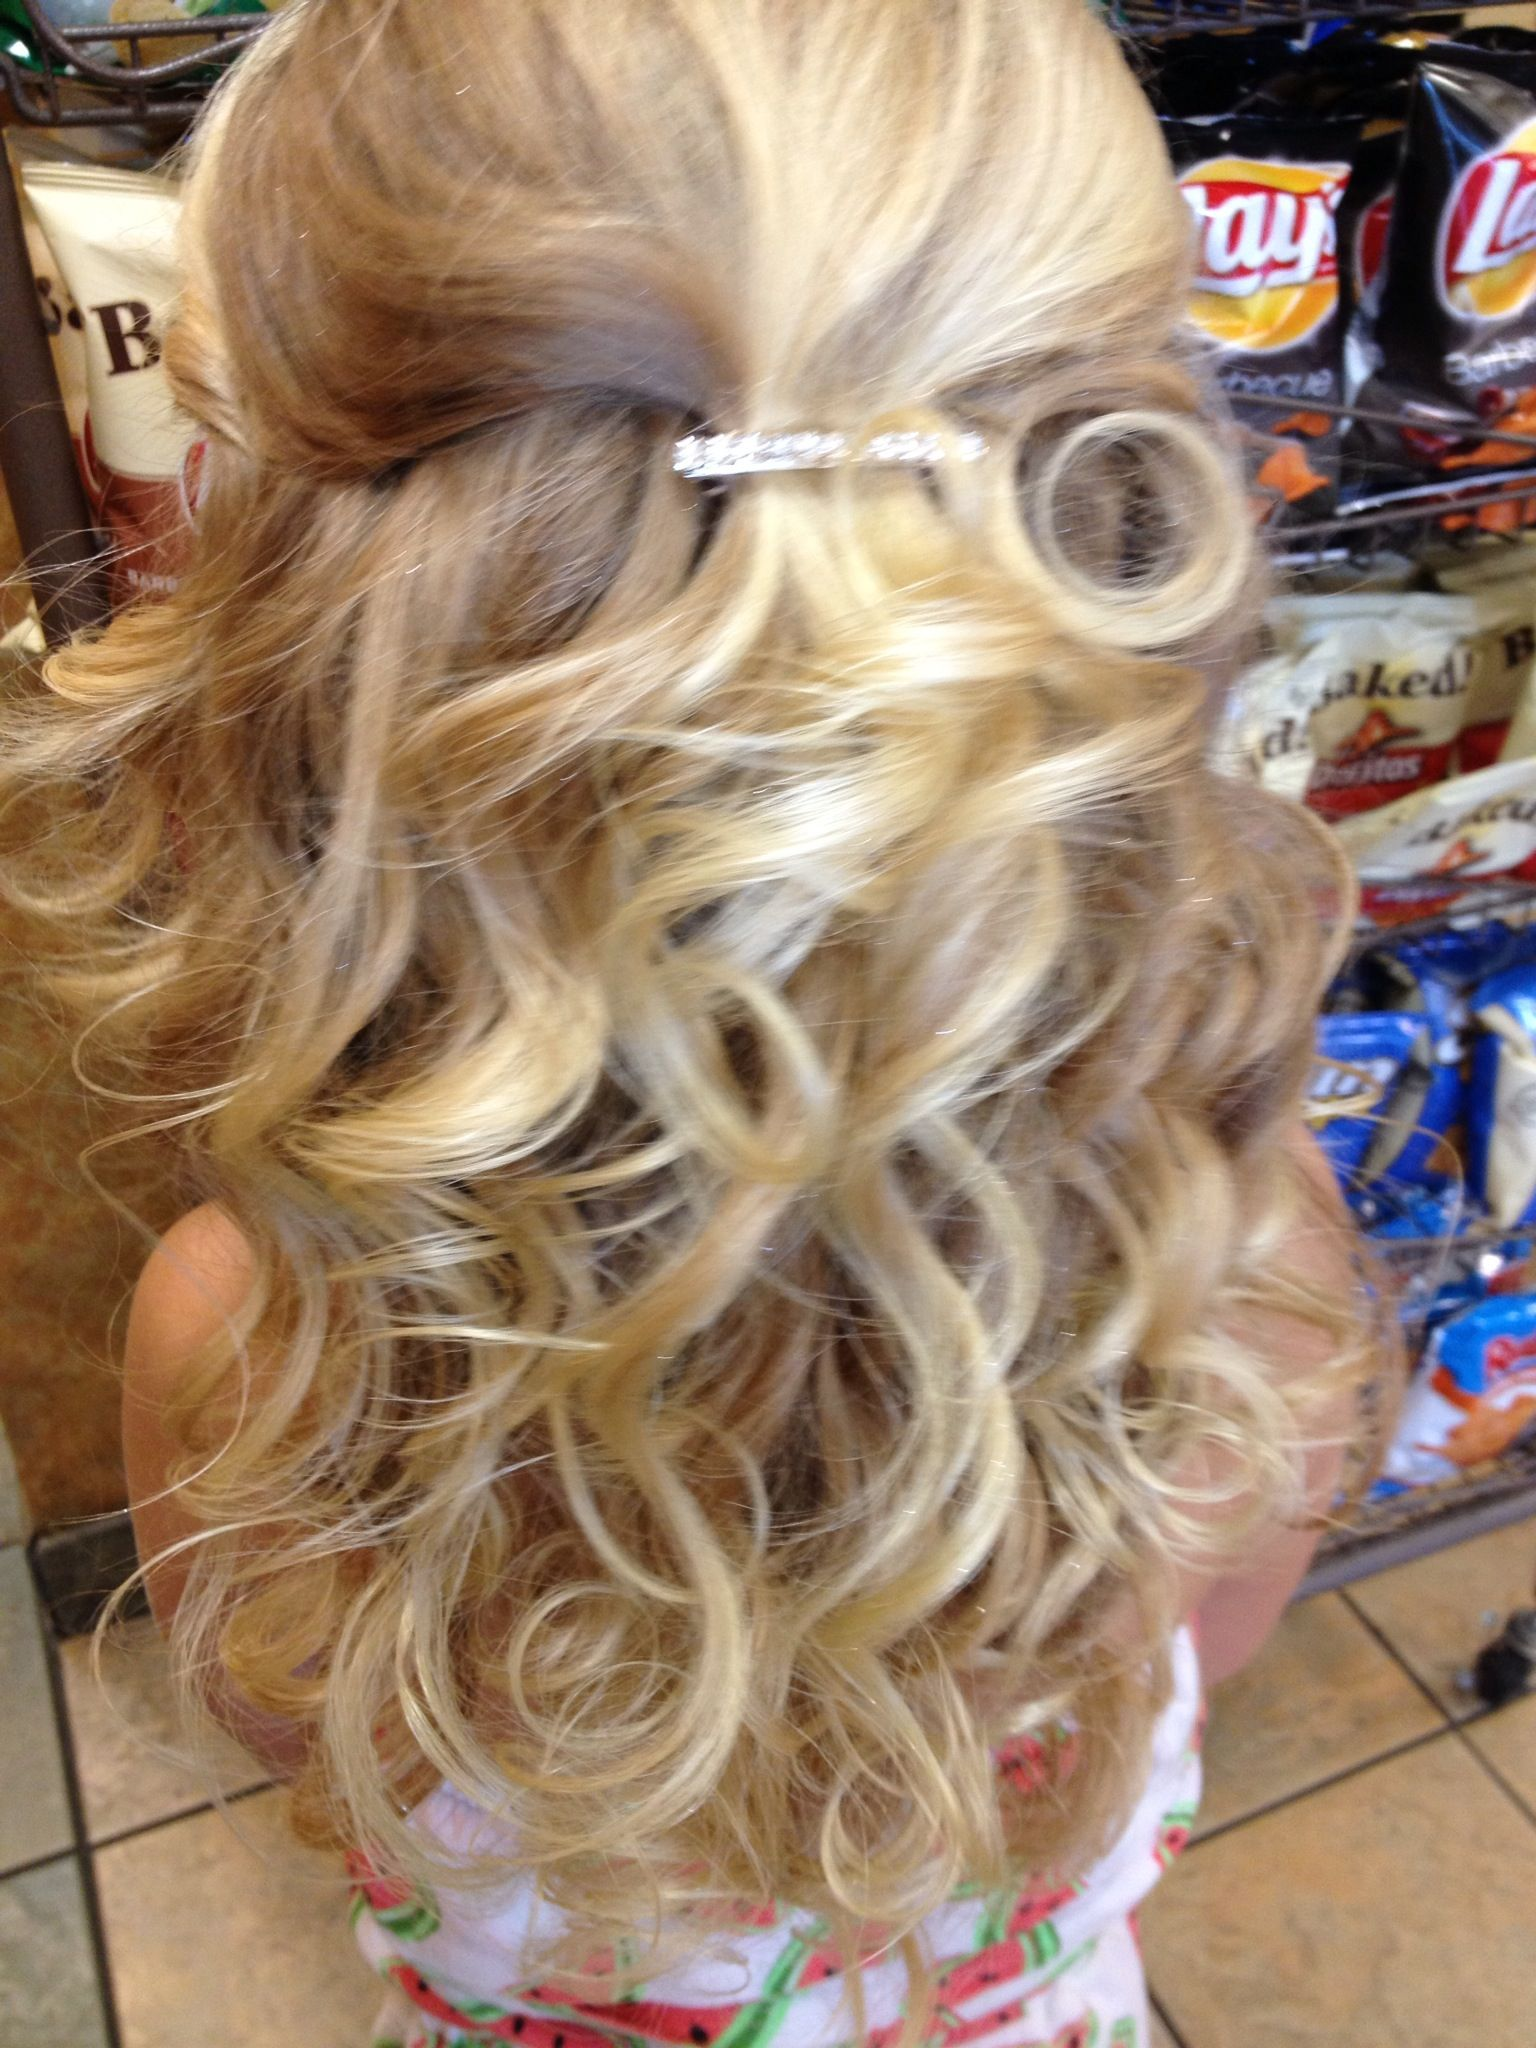 Swell Pageant Hair Cute Hairdos For My Gals Pinterest Beautiful Short Hairstyles For Black Women Fulllsitofus